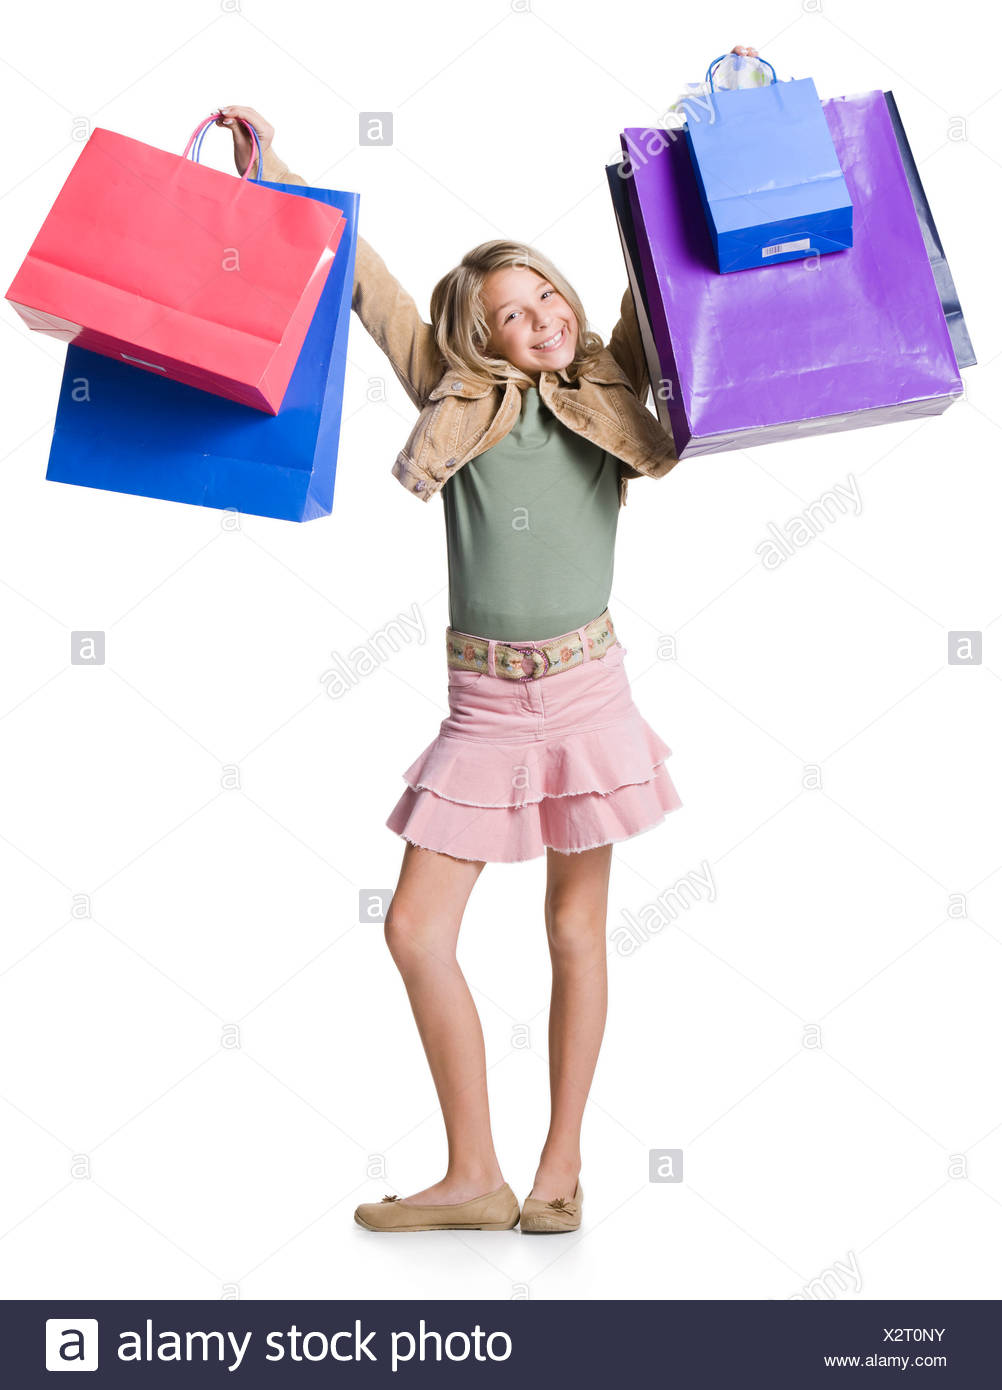 Girl running with shopping bags - Stock Image